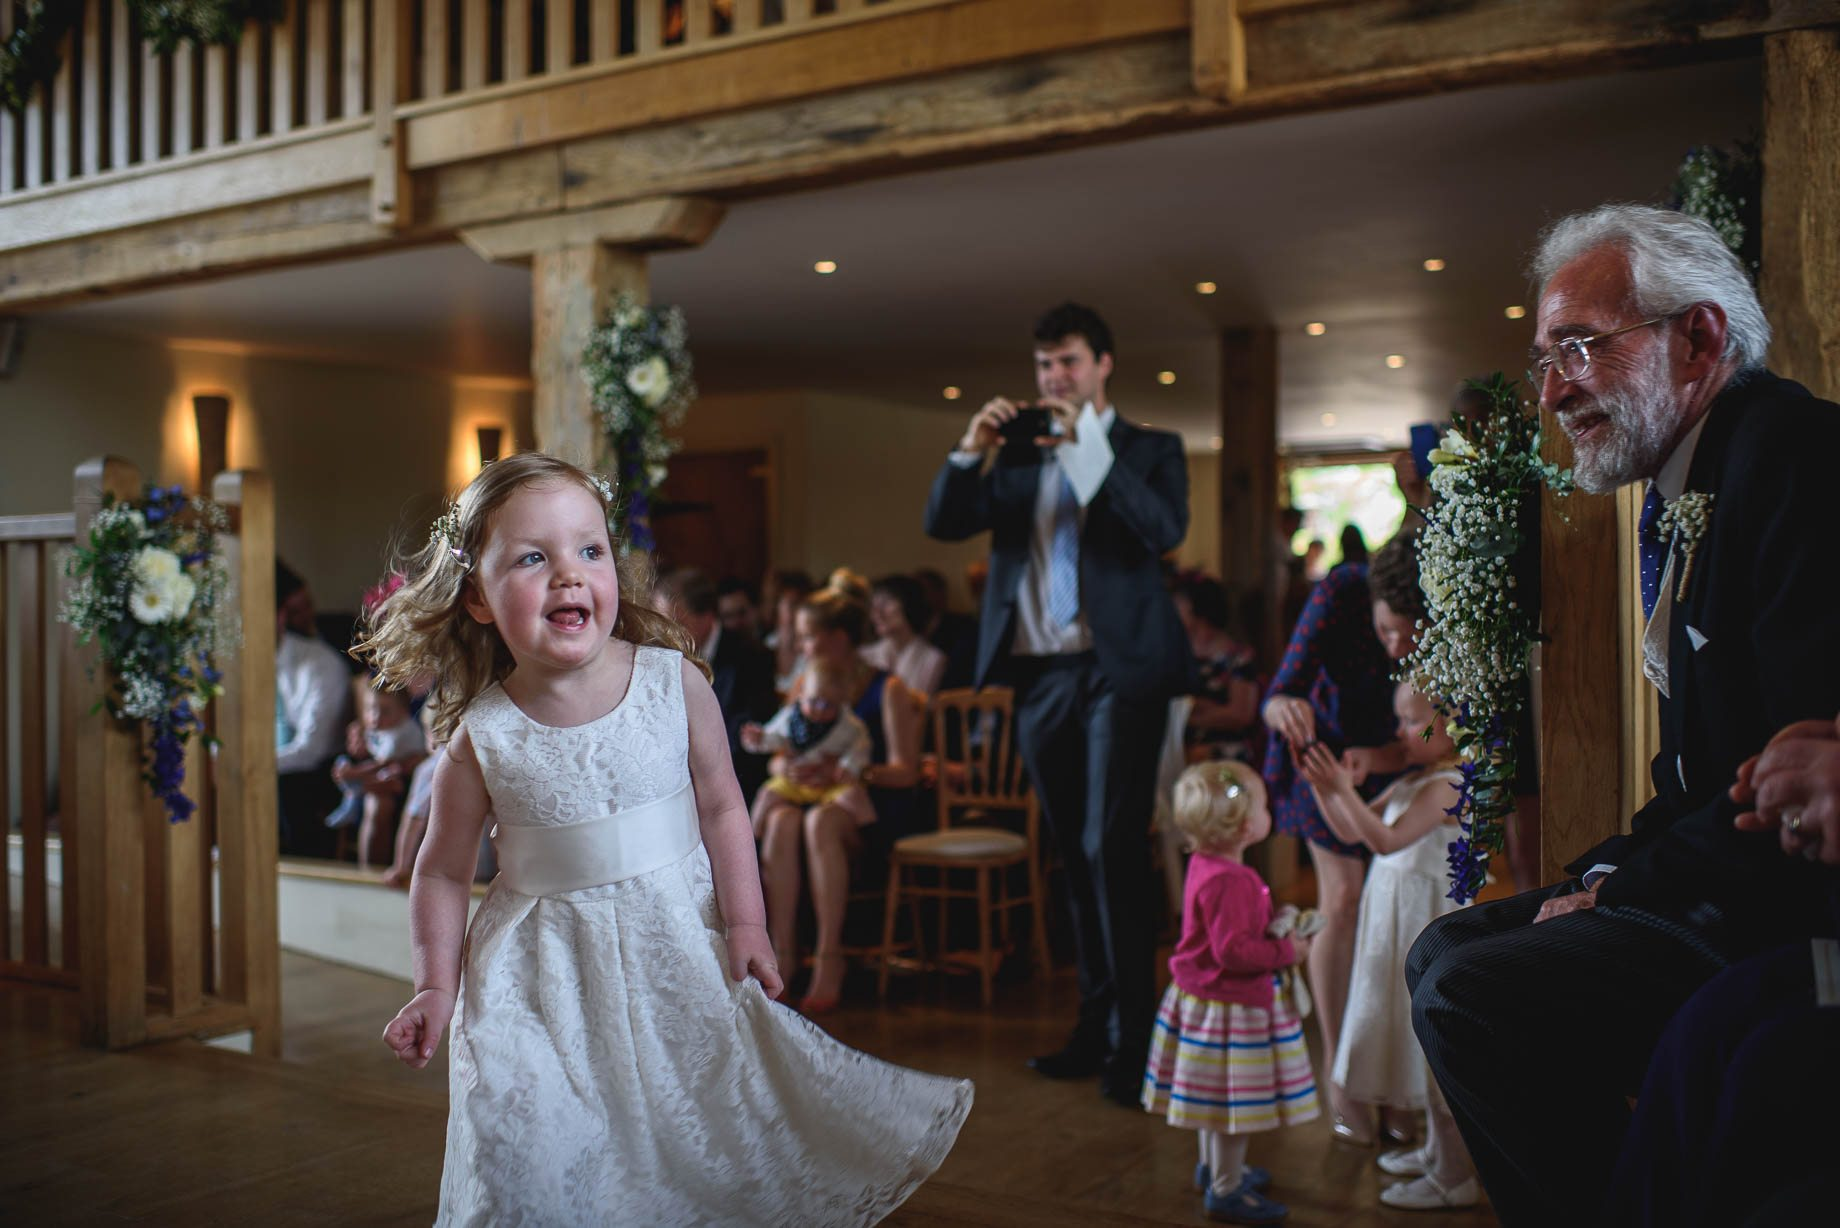 Bury Court Barn wedding photography by Guy Collier - Heather and Pat (52 of 170)